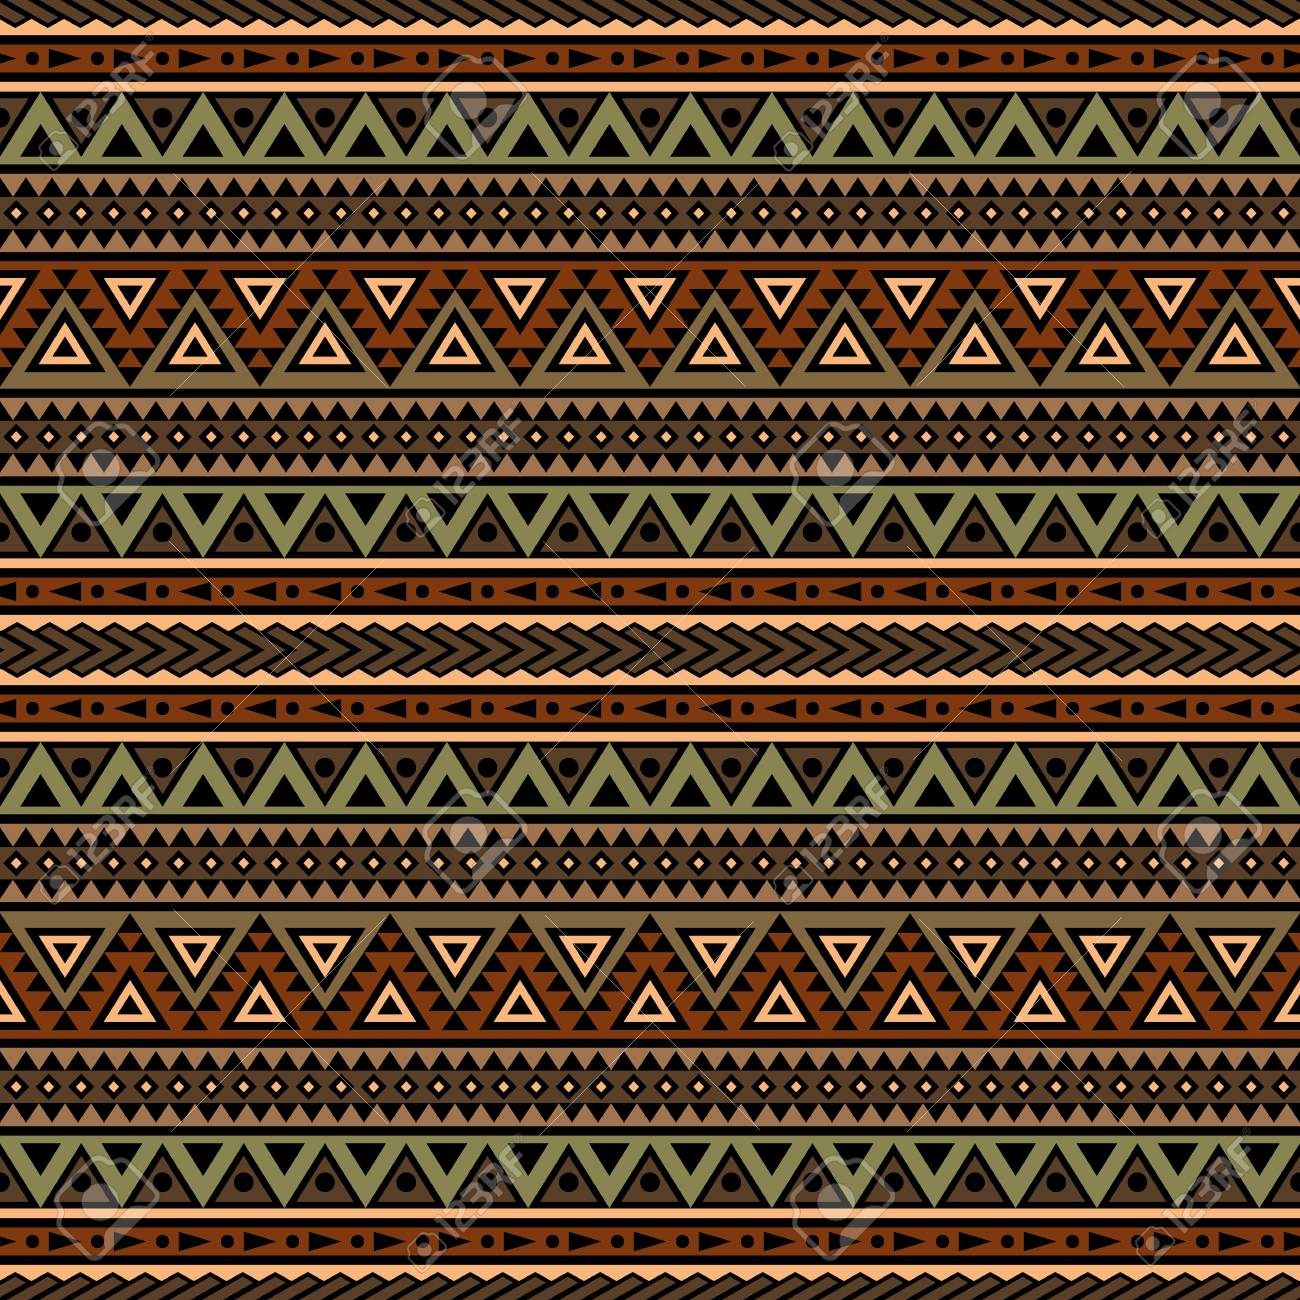 Tribal Aztec Print Template For Fabric And Paper. Seamless Pattern ...